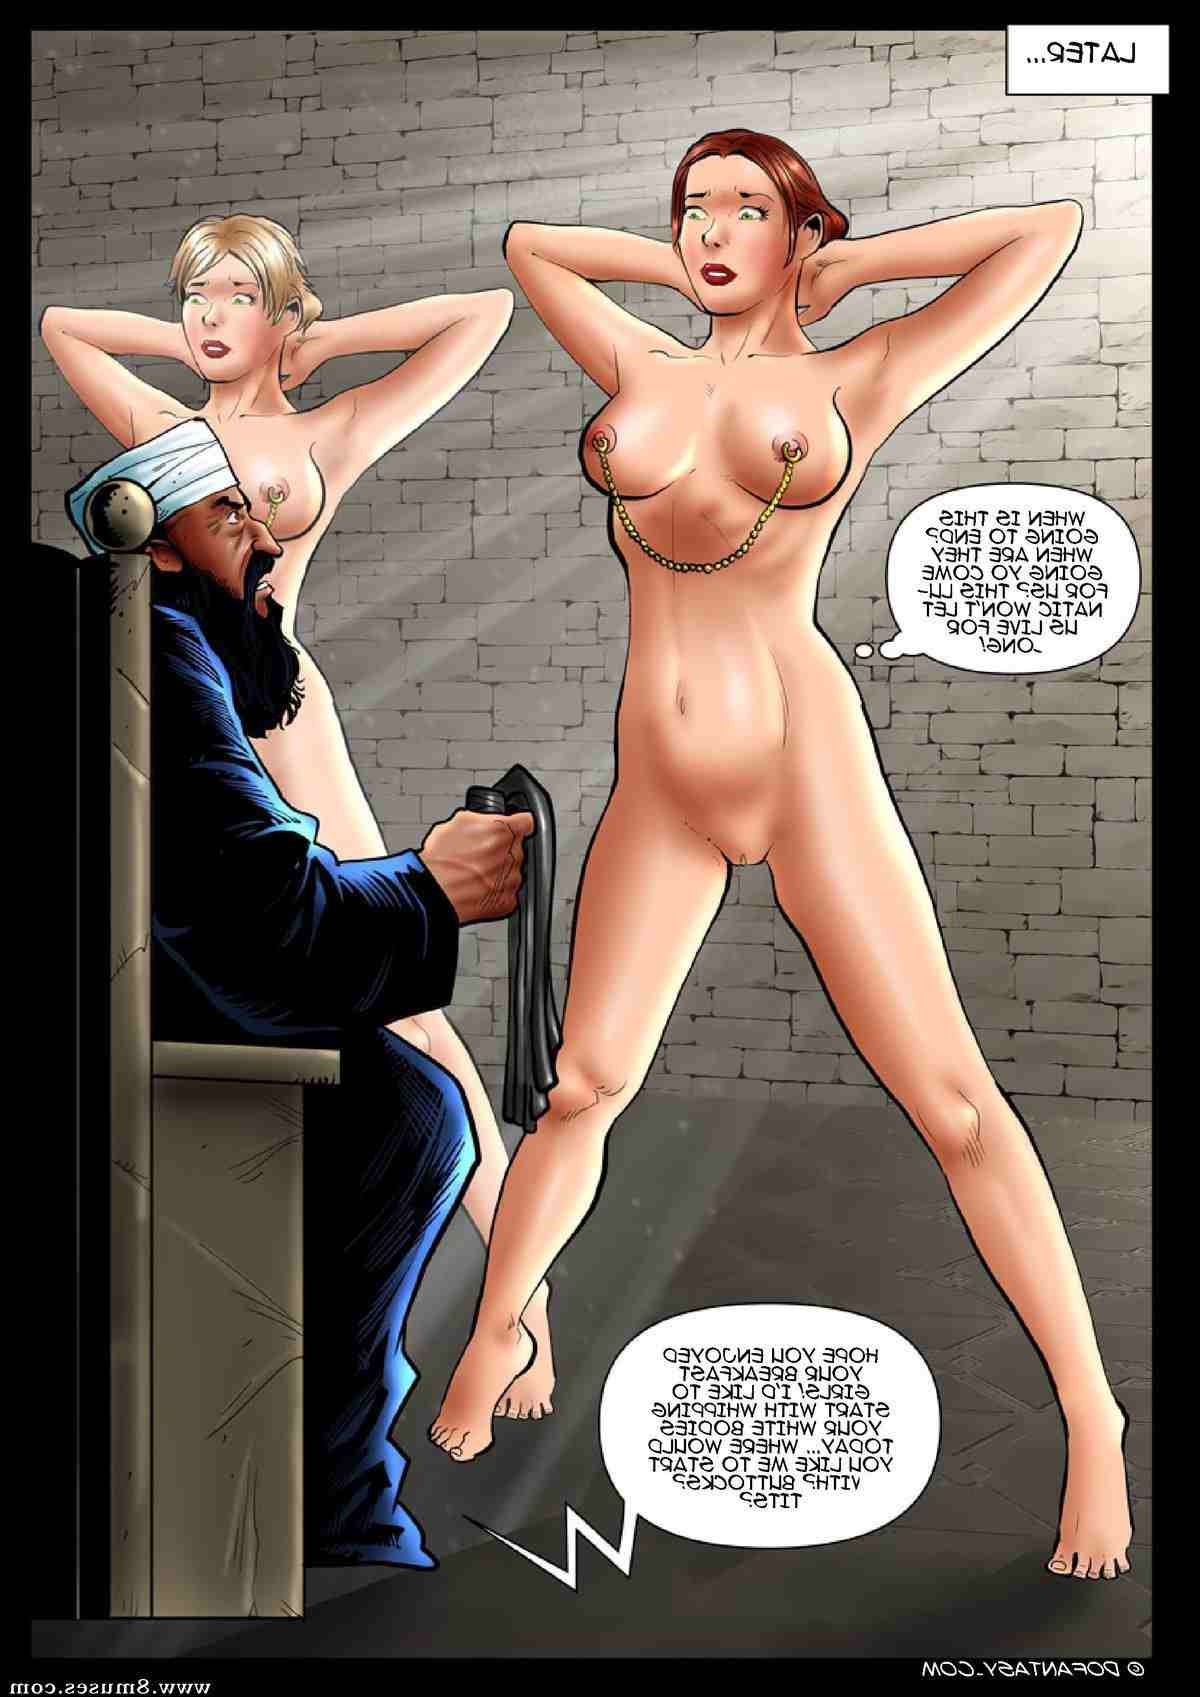 Fansadox-Comics/301-400/Fansadox-369-The-Pows Fansadox_369_-_The_Pows__8muses_-_Sex_and_Porn_Comics_36.jpg